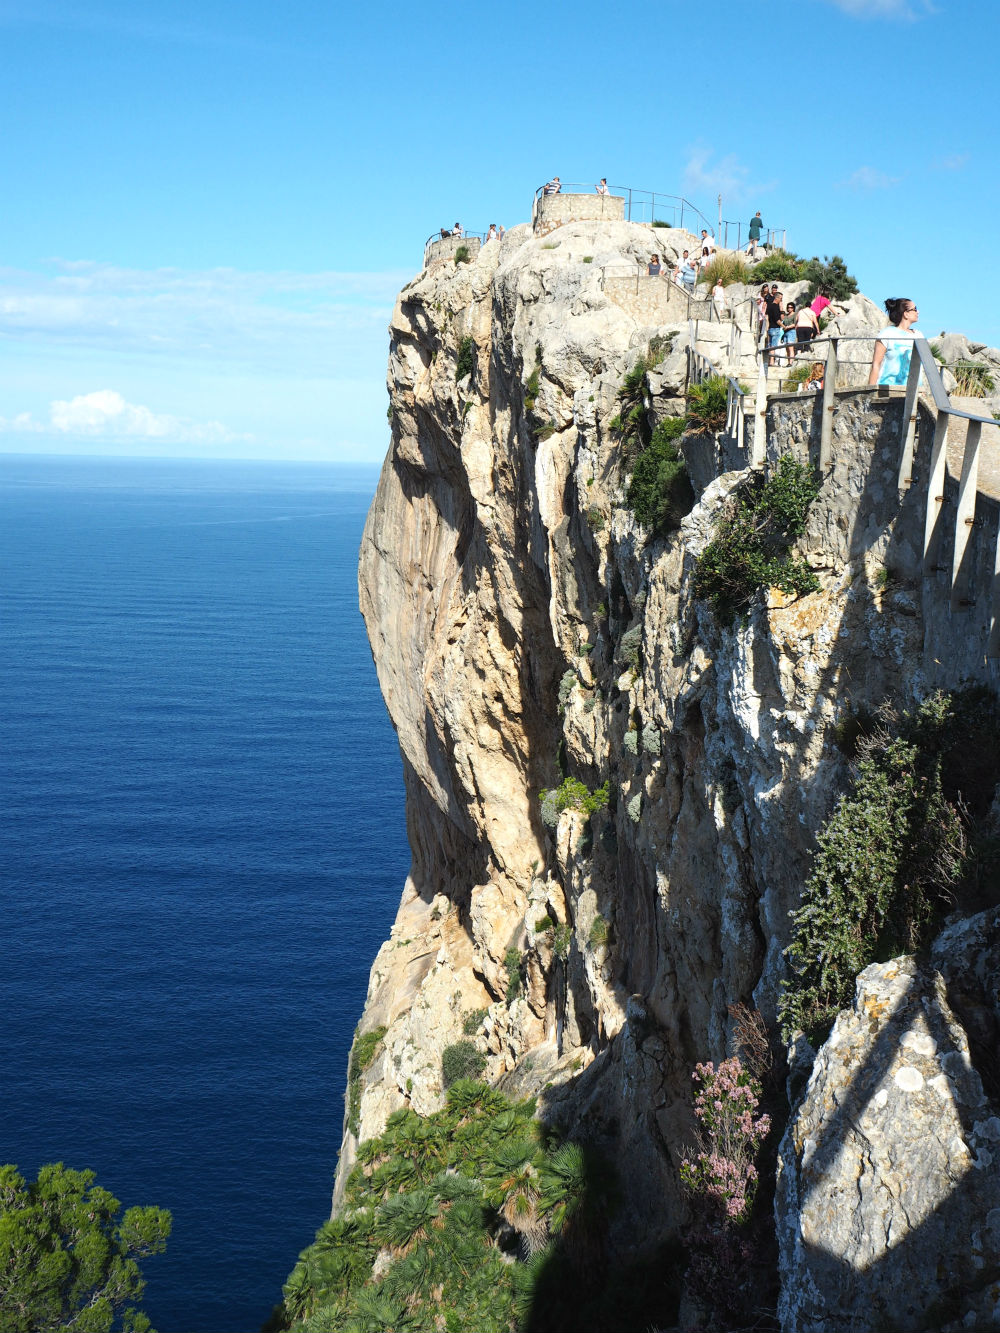 The viewpoint Mirador Es Colomer in Mallorca is well hidden in the Tramuntana mountain range